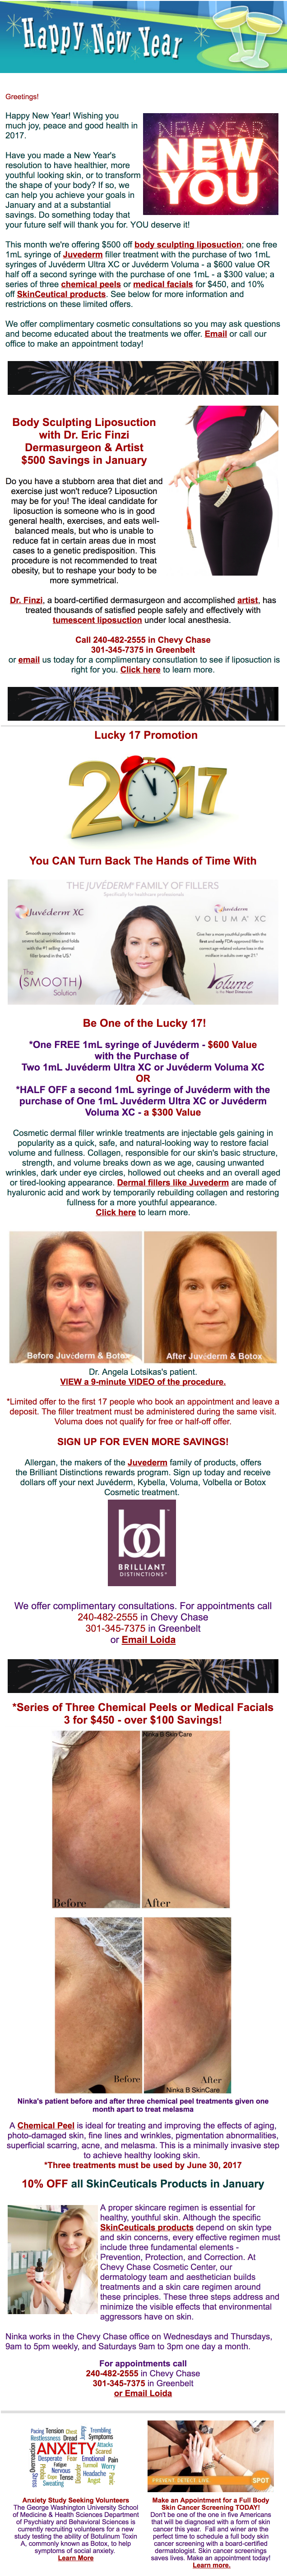 Botox discount liposuction specials January 2017 Chevy Chase Cosmetic Center